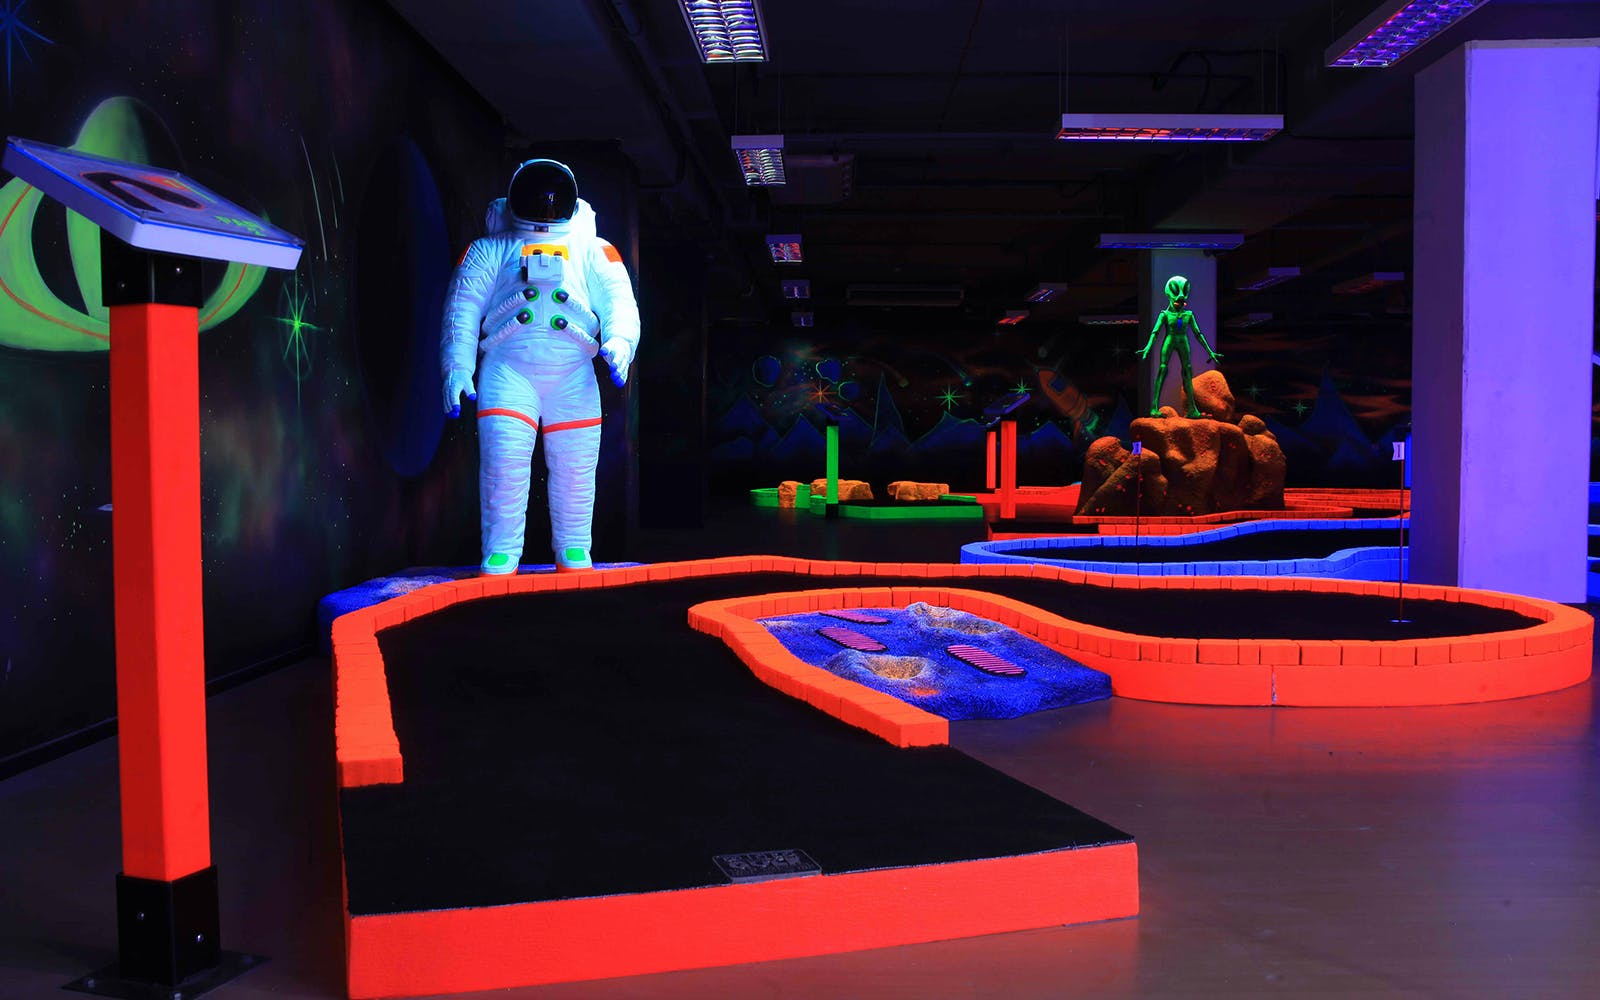 Glow in the Dark Mini Golf